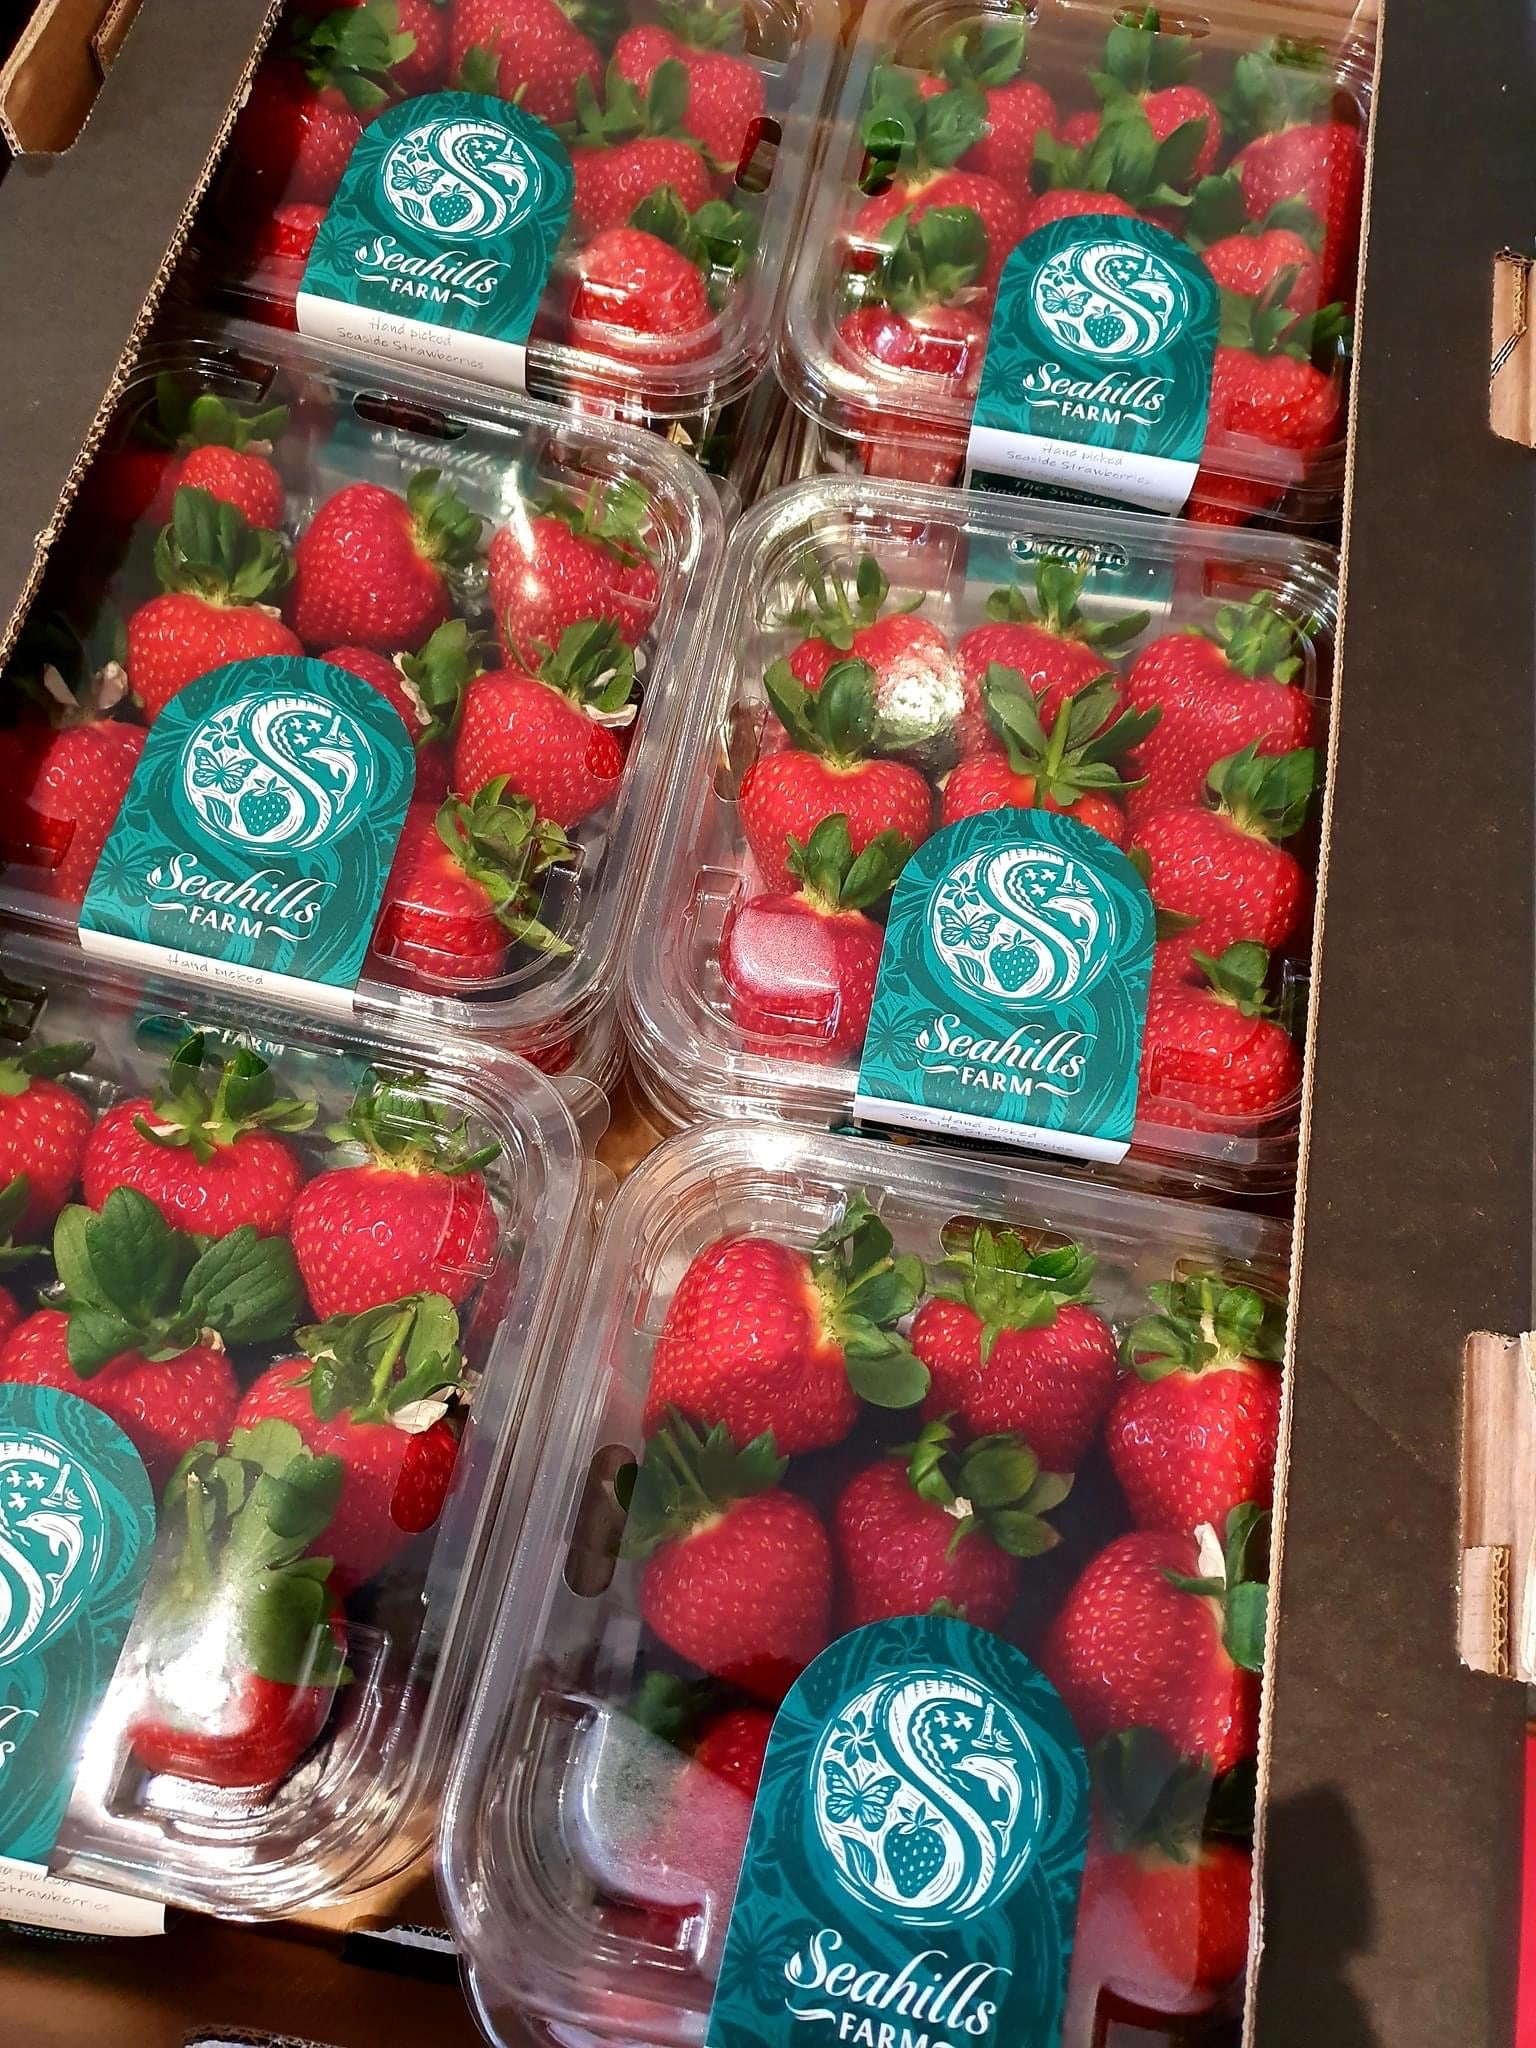 Seahill Premium Strawberries